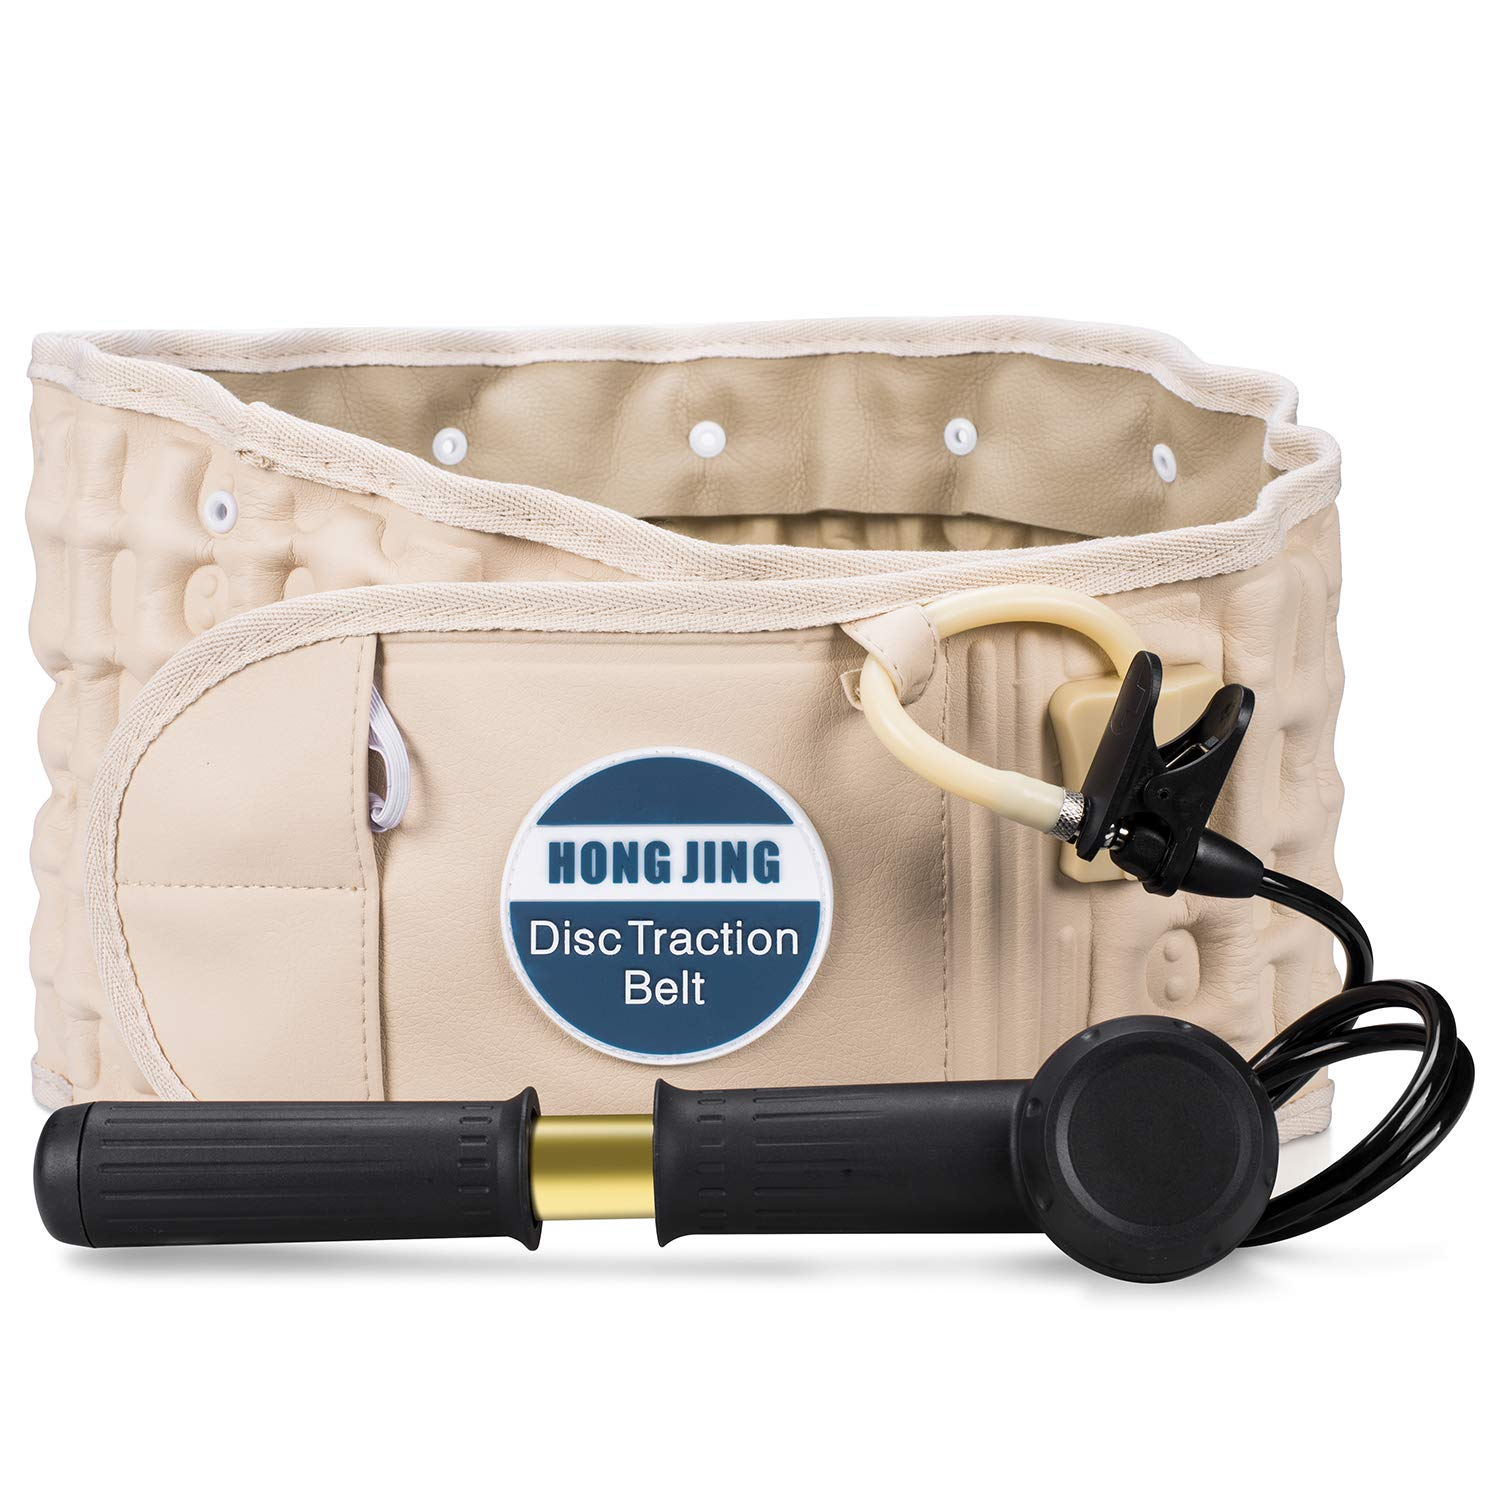 Spinal Decompression Back store Belt Fees free Lumbar for Reli Pain Support